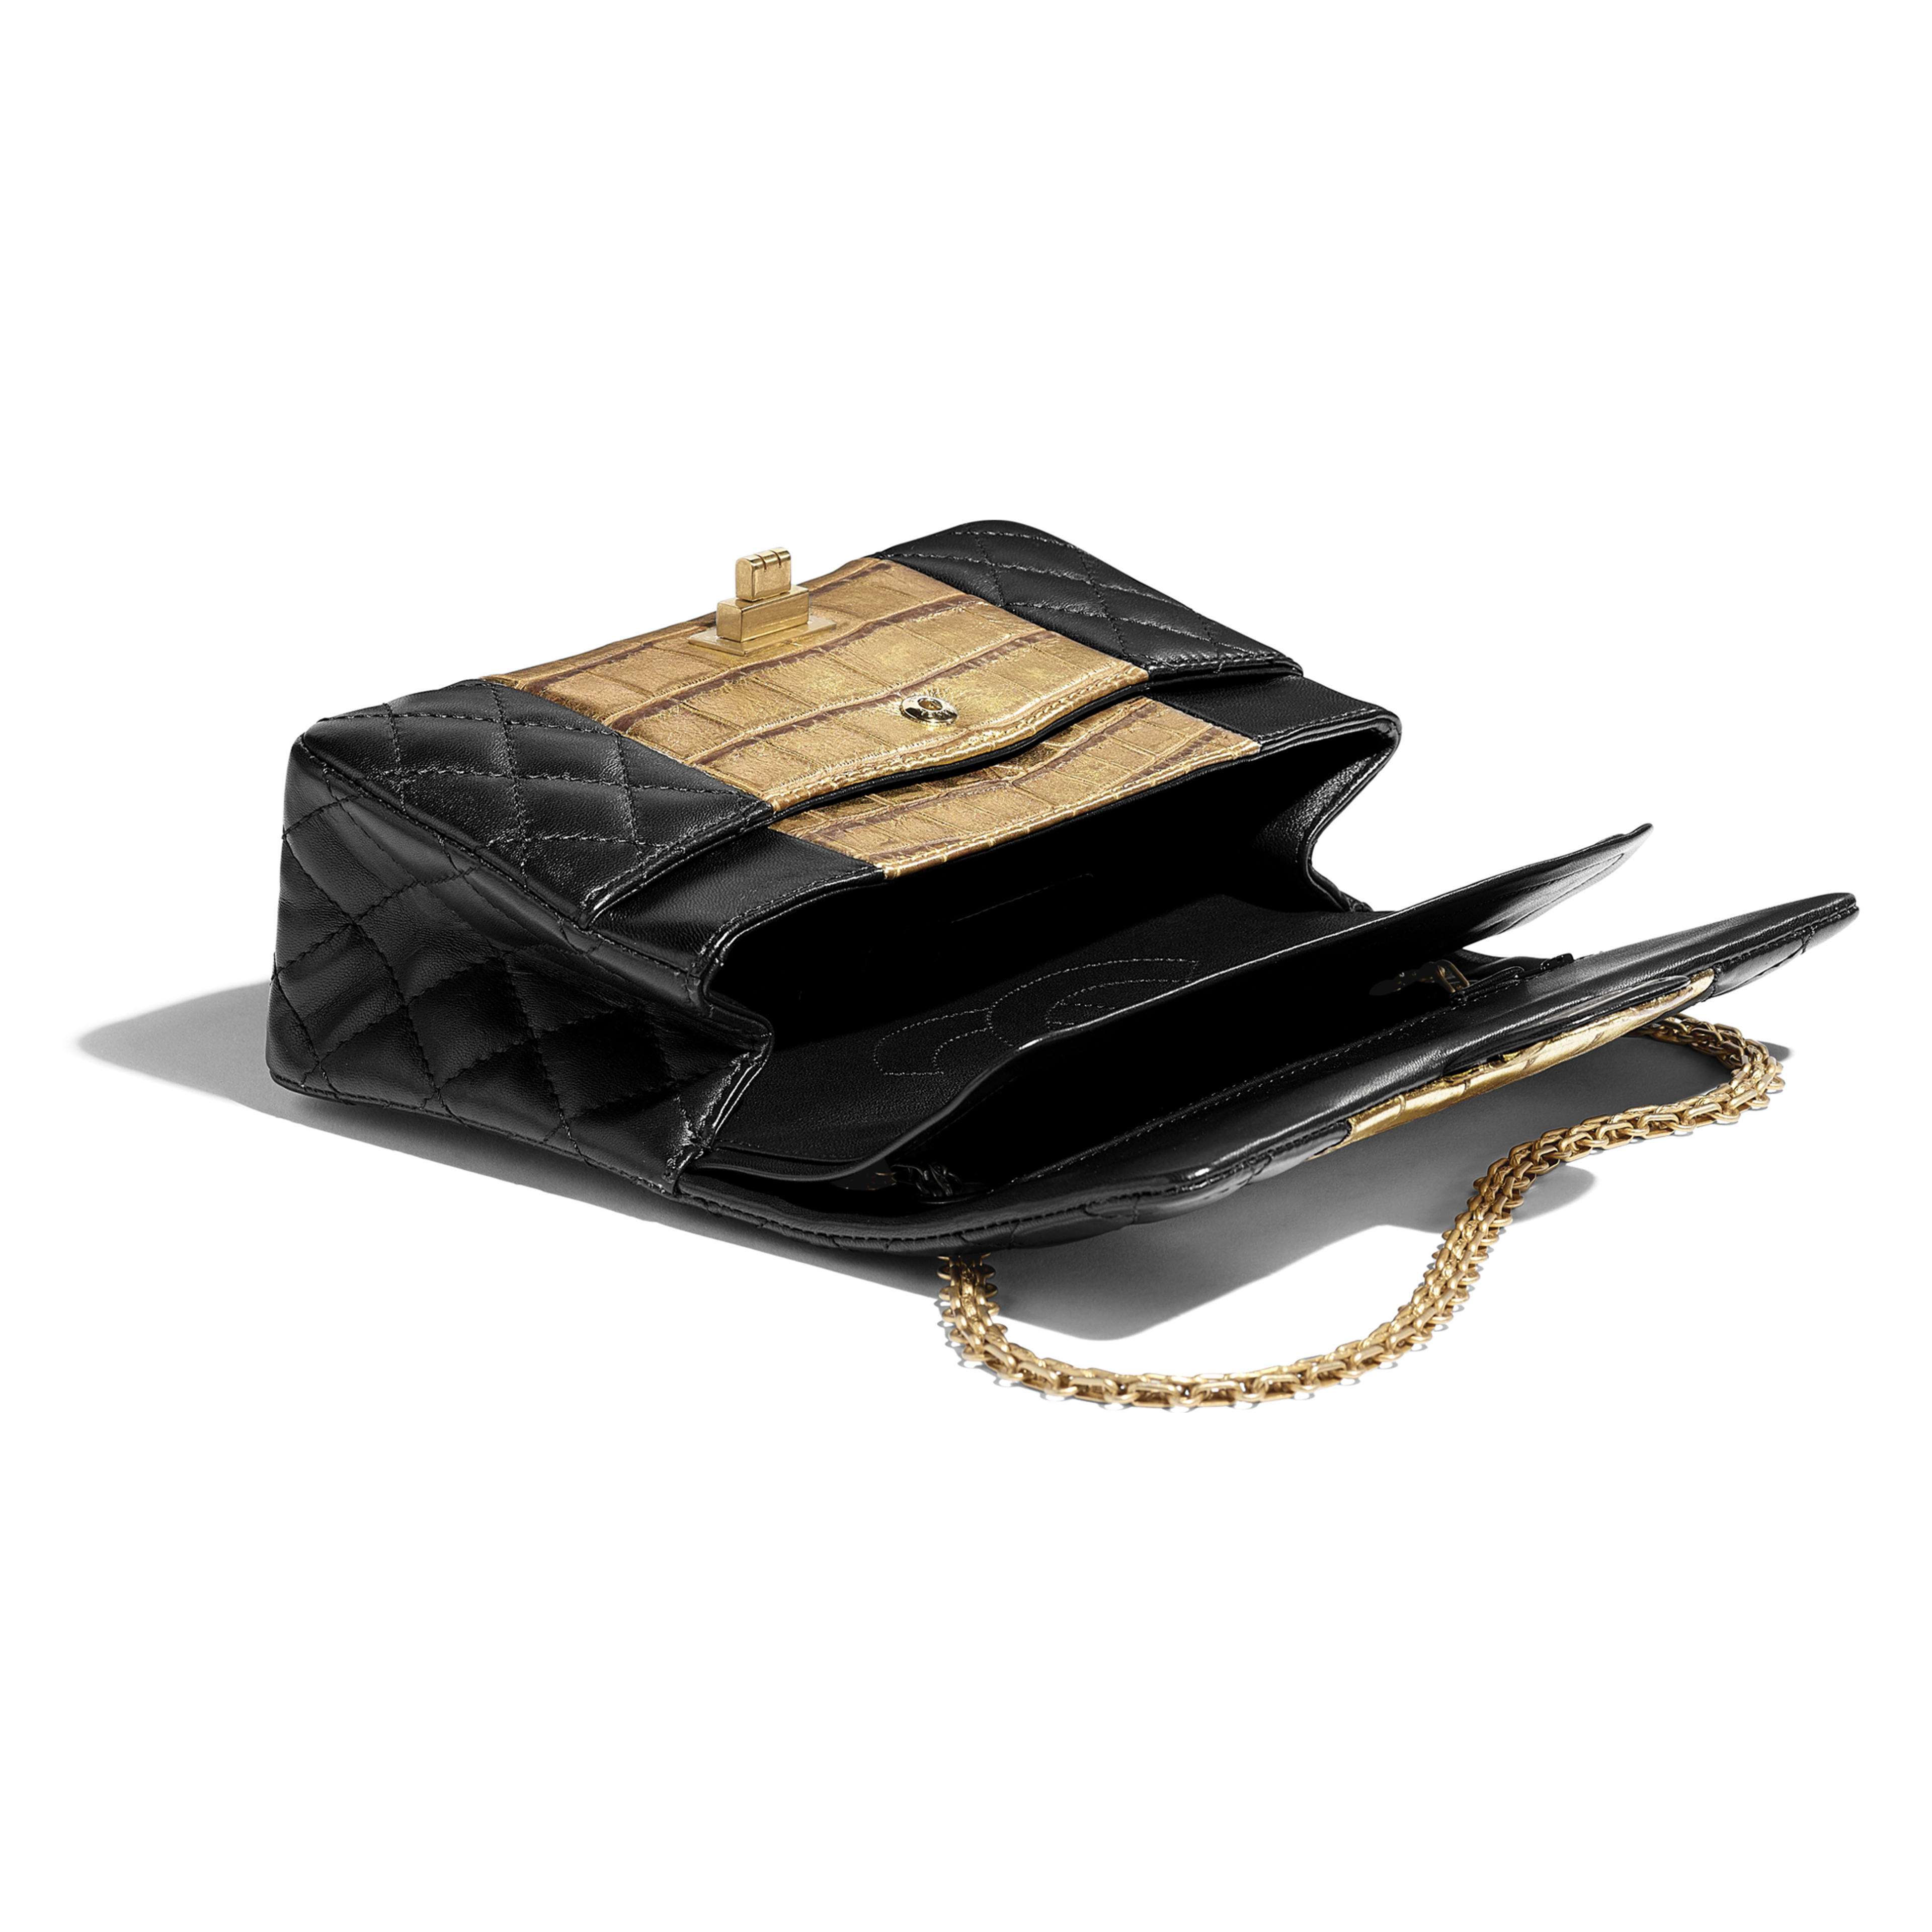 2.55 Handbag - Black & Gold - Lambskin, Crocodile Embossed Calfskin & Gold-Tone Metal - Other view - see full sized version